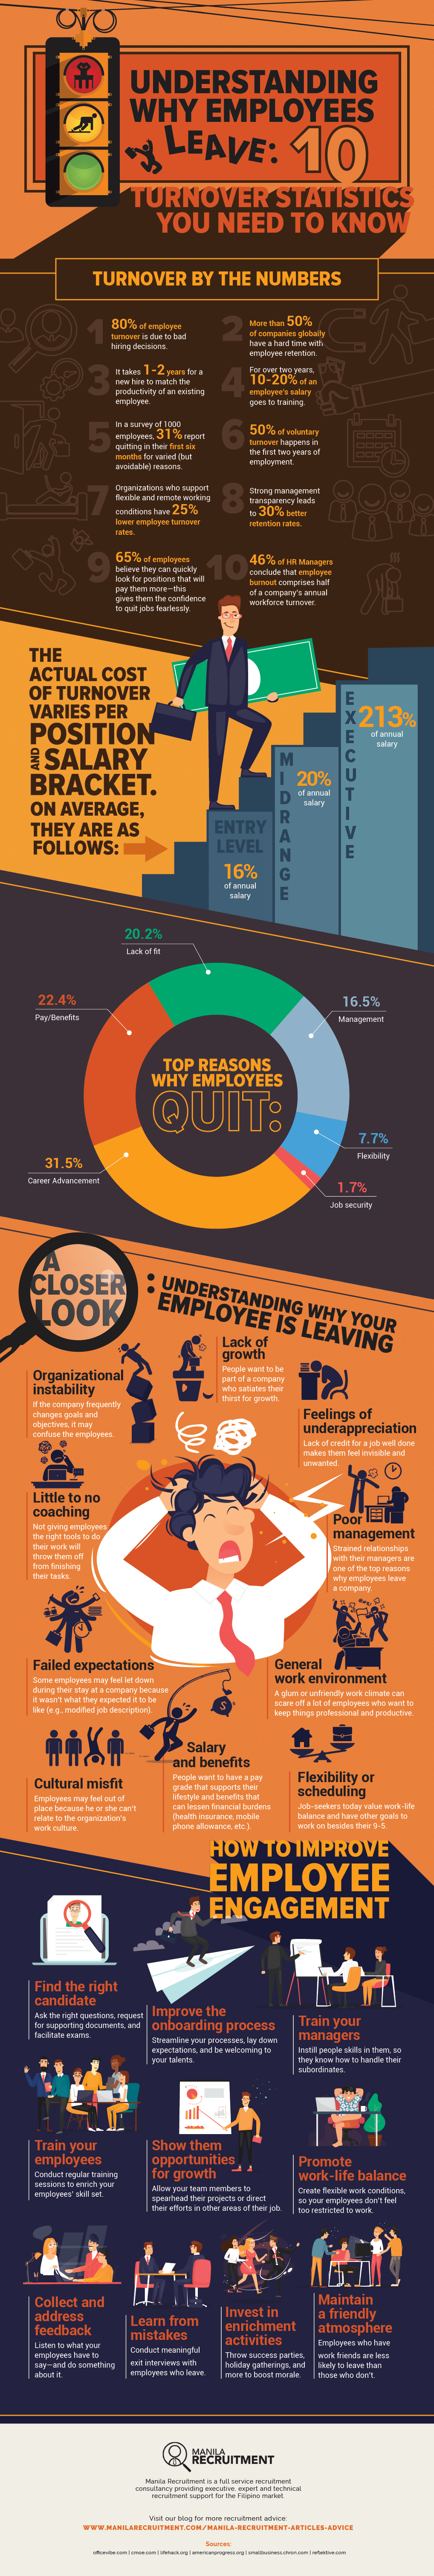 whats behind high employee turnover rate